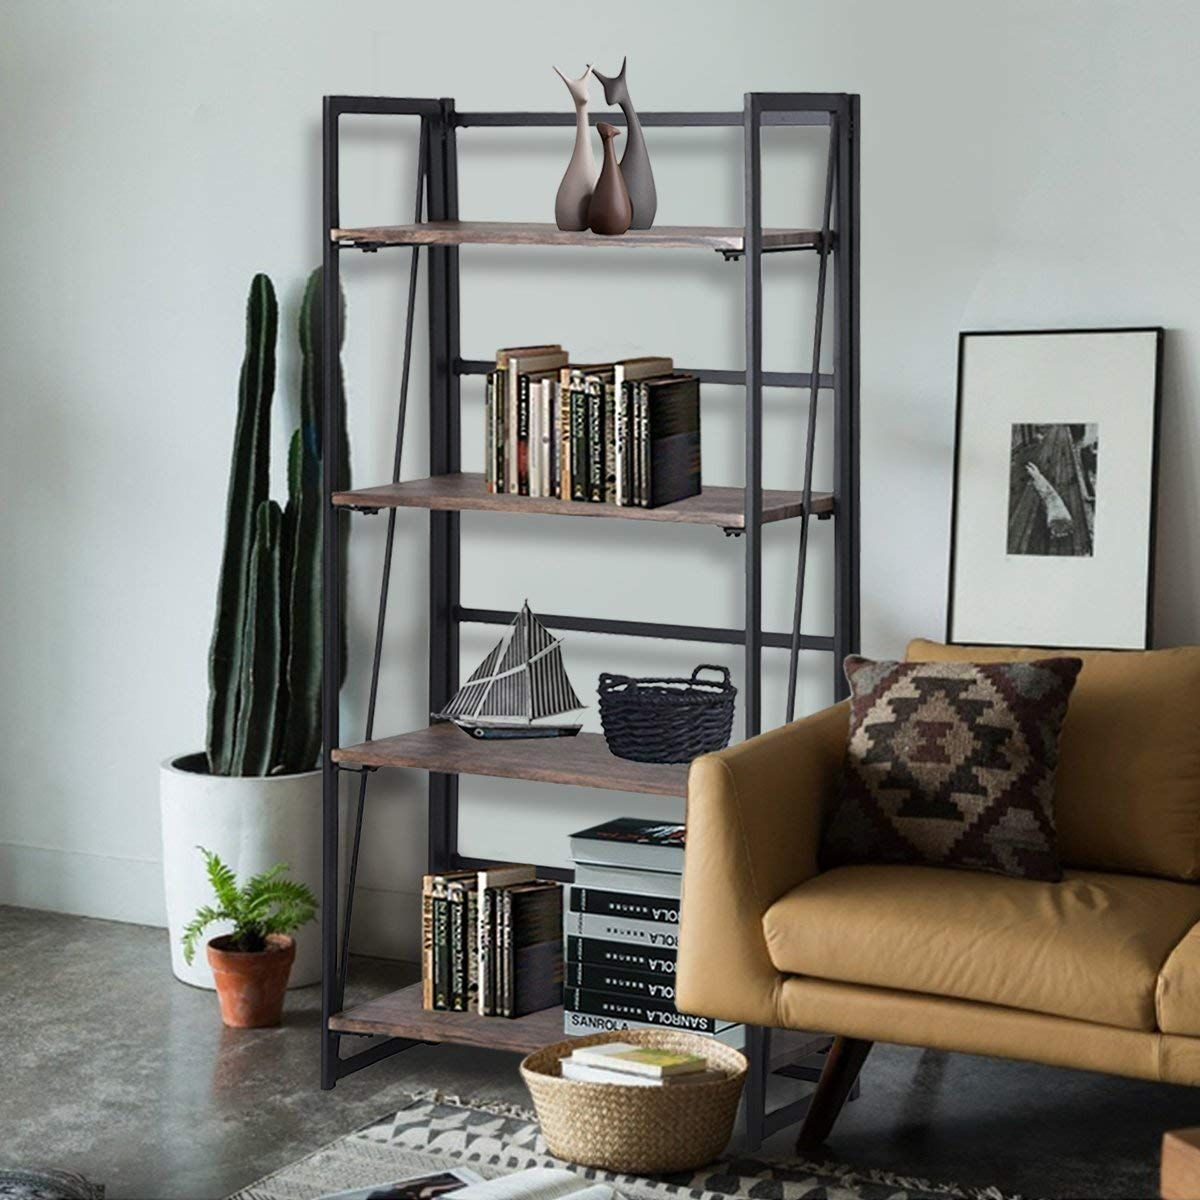 Coavas Folding Bookcase 4 Tiers Bookshelf Wood Rack Cabinet No Assembly Industrial Display Shelves